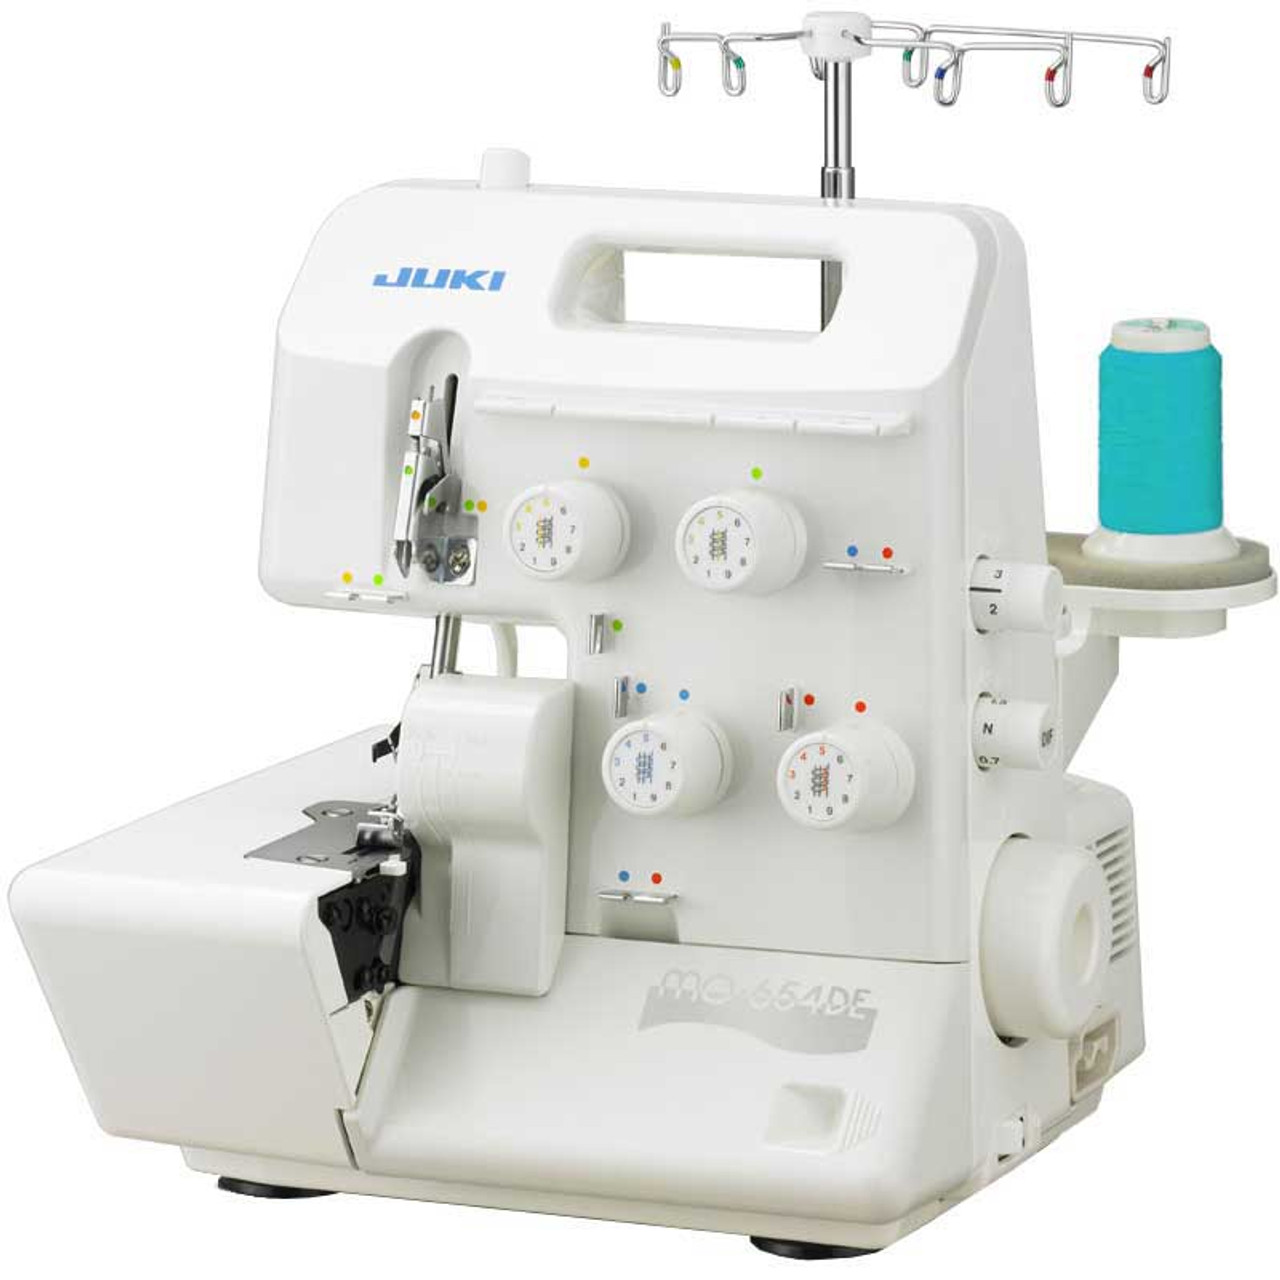 Juki MO40DE Show Model Pearl Series Serger 4040 FREE SHIPPING Interesting Can A Serger Be Used As A Sewing Machine